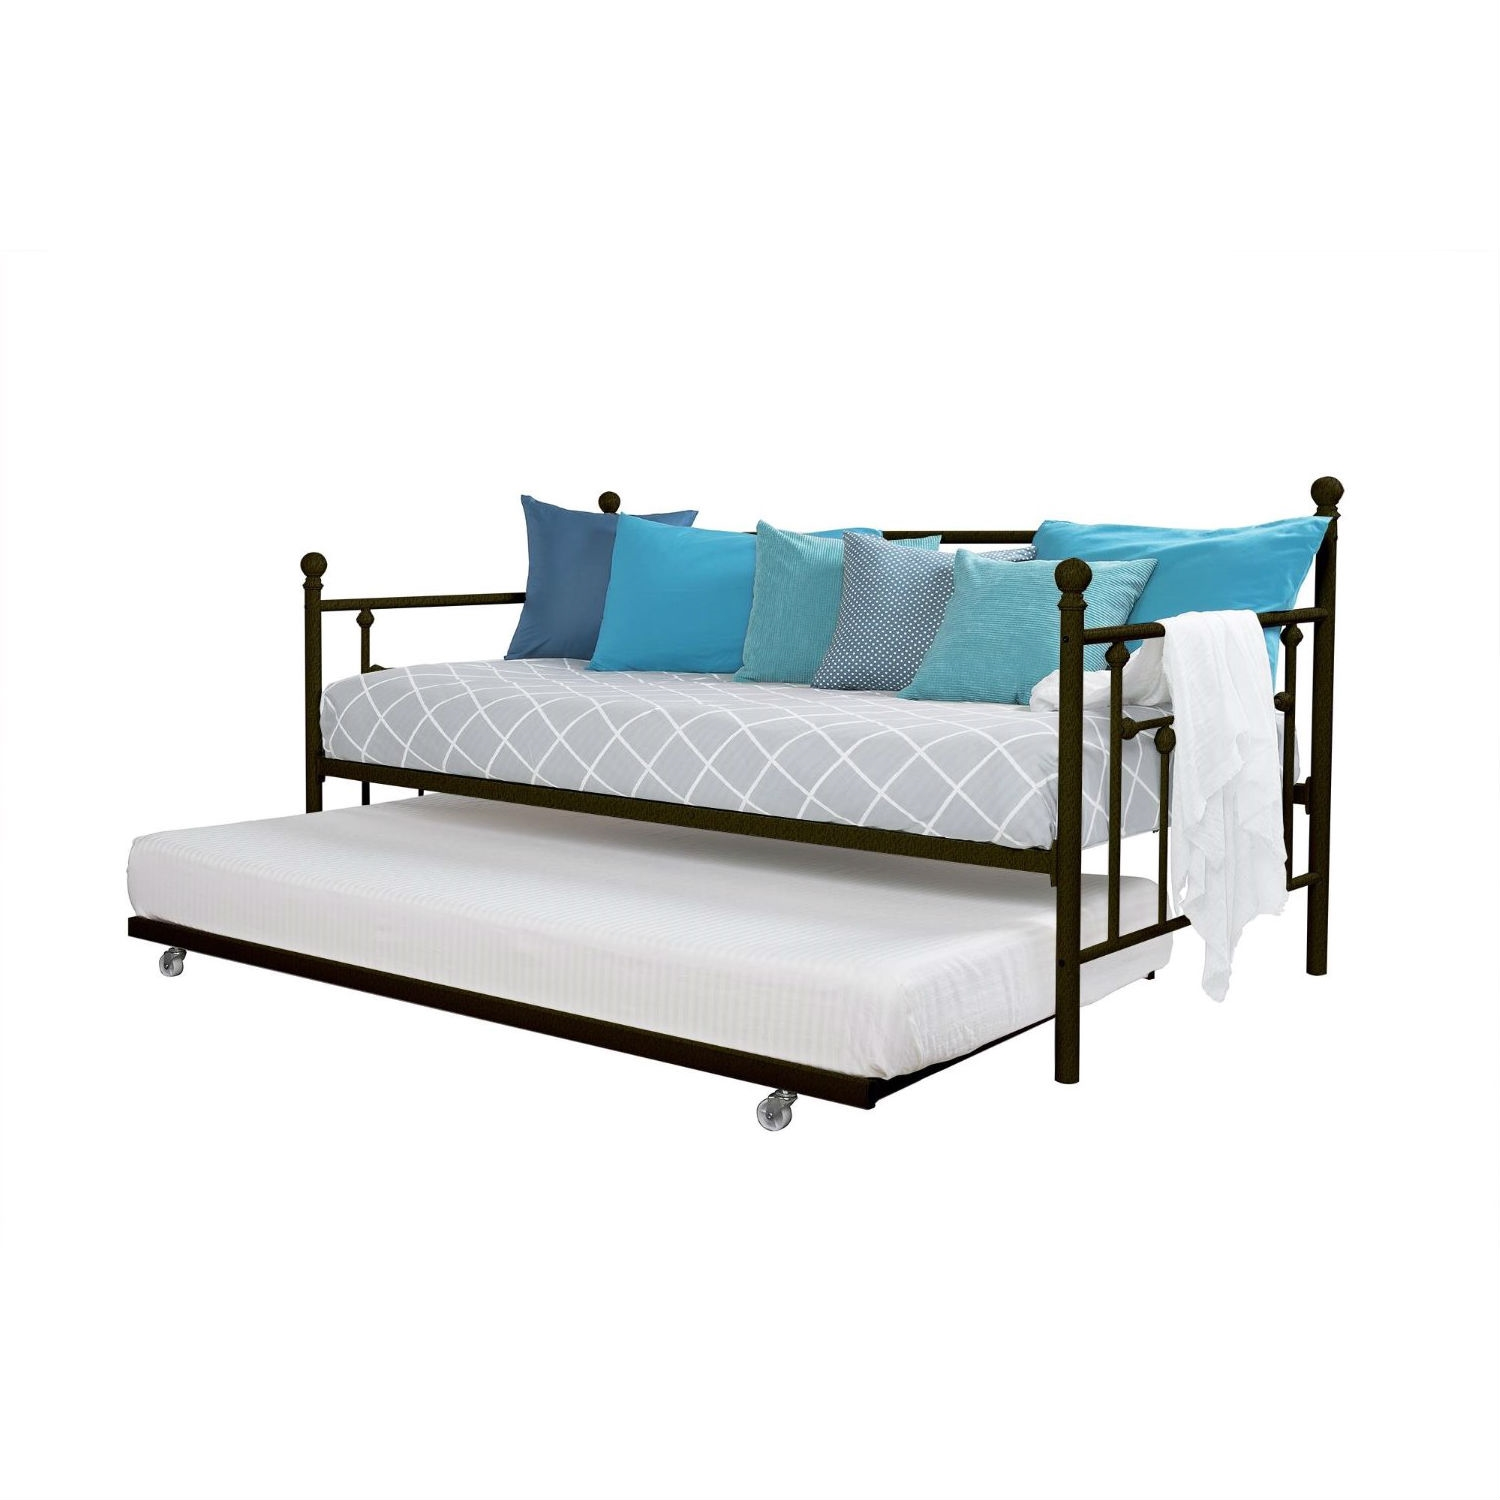 Metal Daybed With Pull Out Trundle Bed